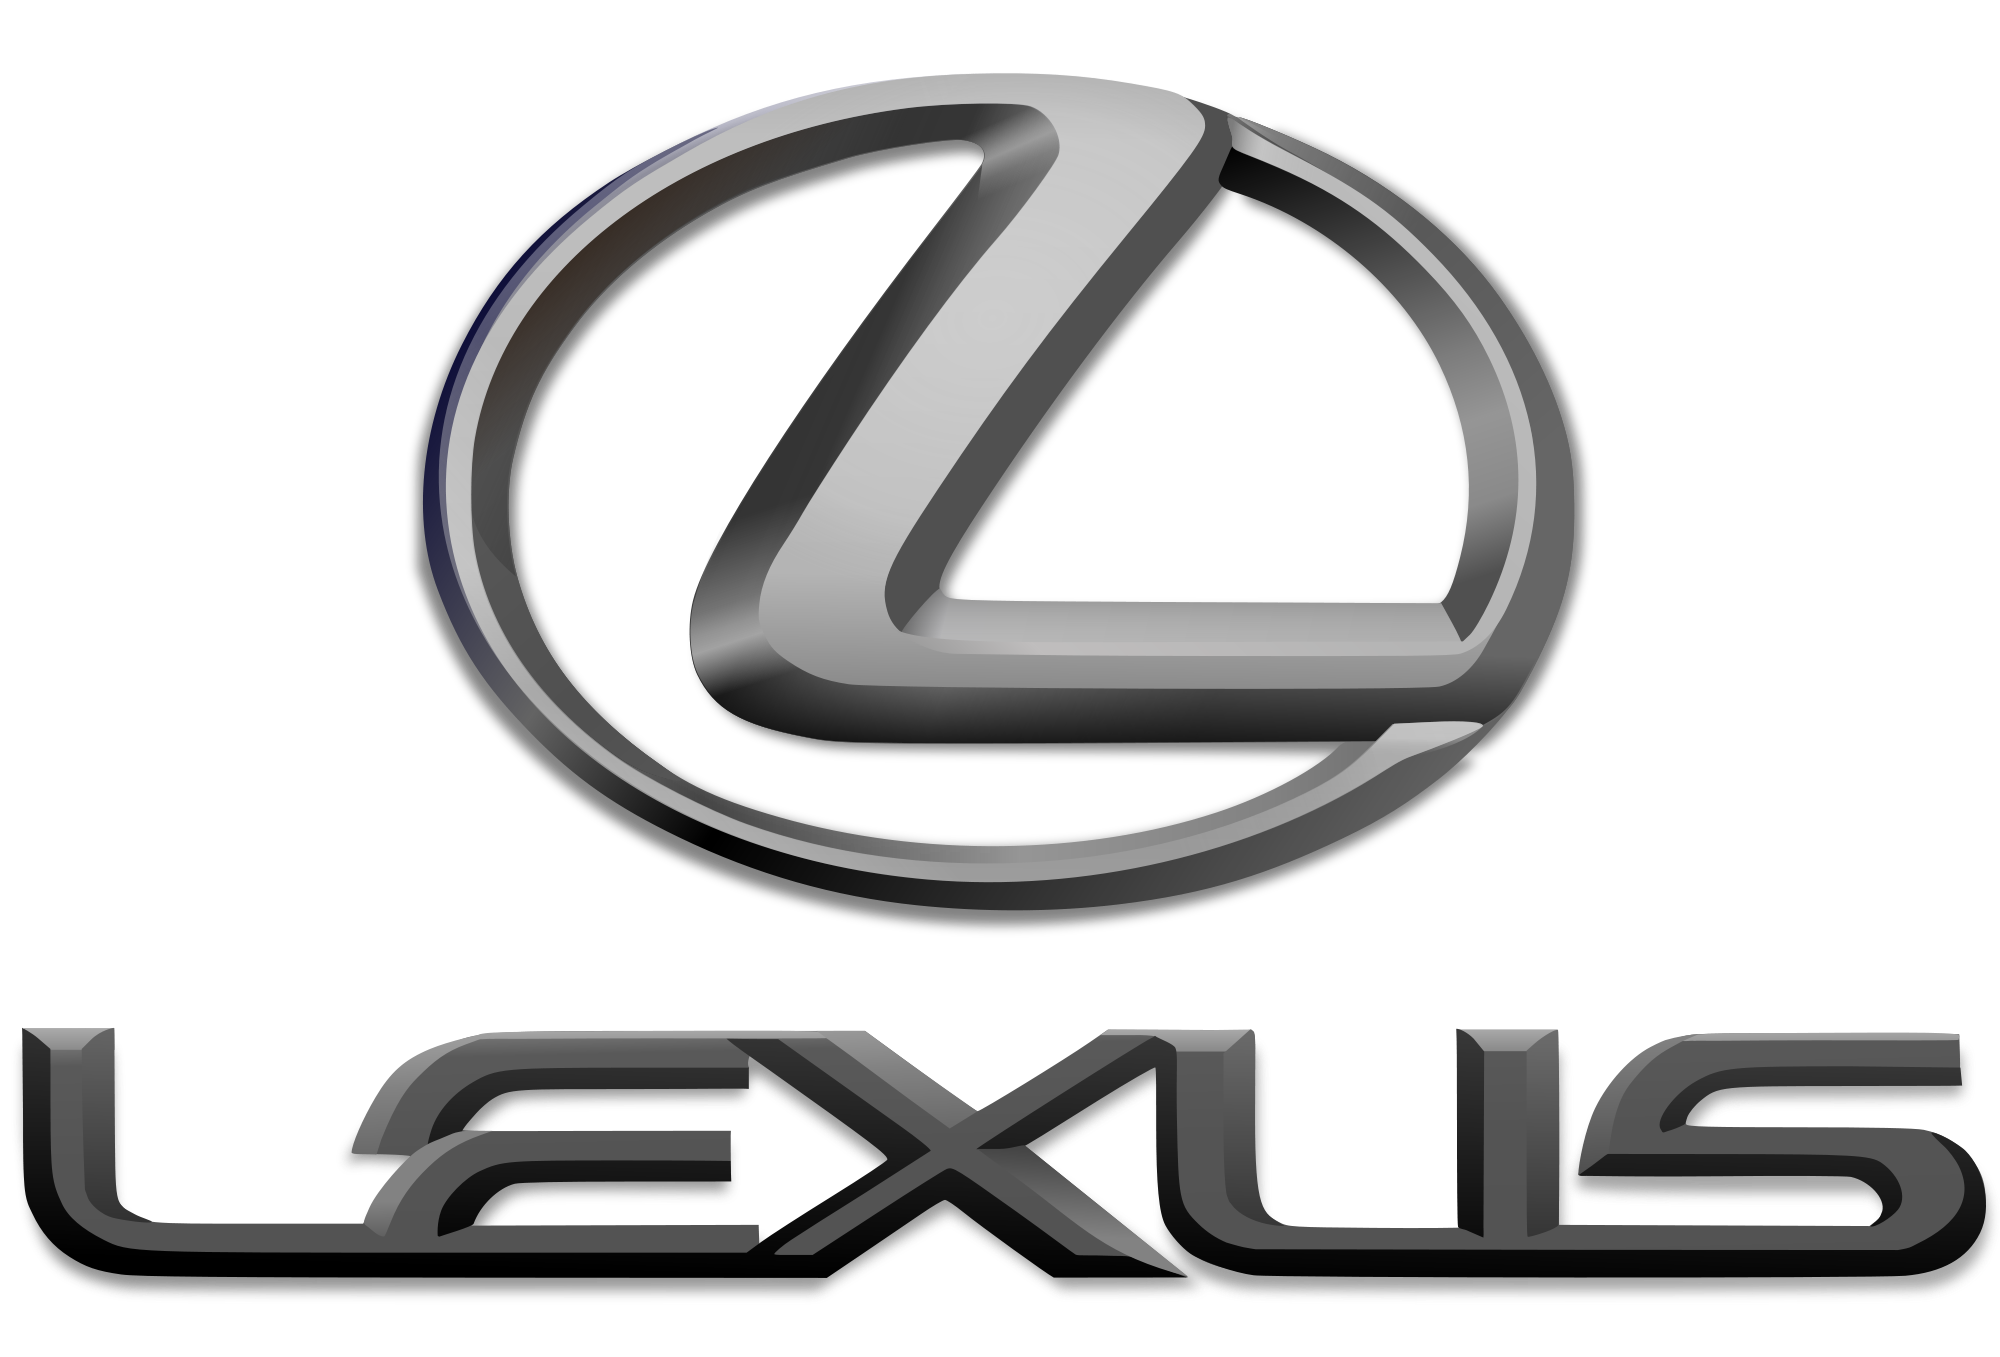 Lexus logo lexus car symbol meaning and history car brand names lexus logo biocorpaavc Images